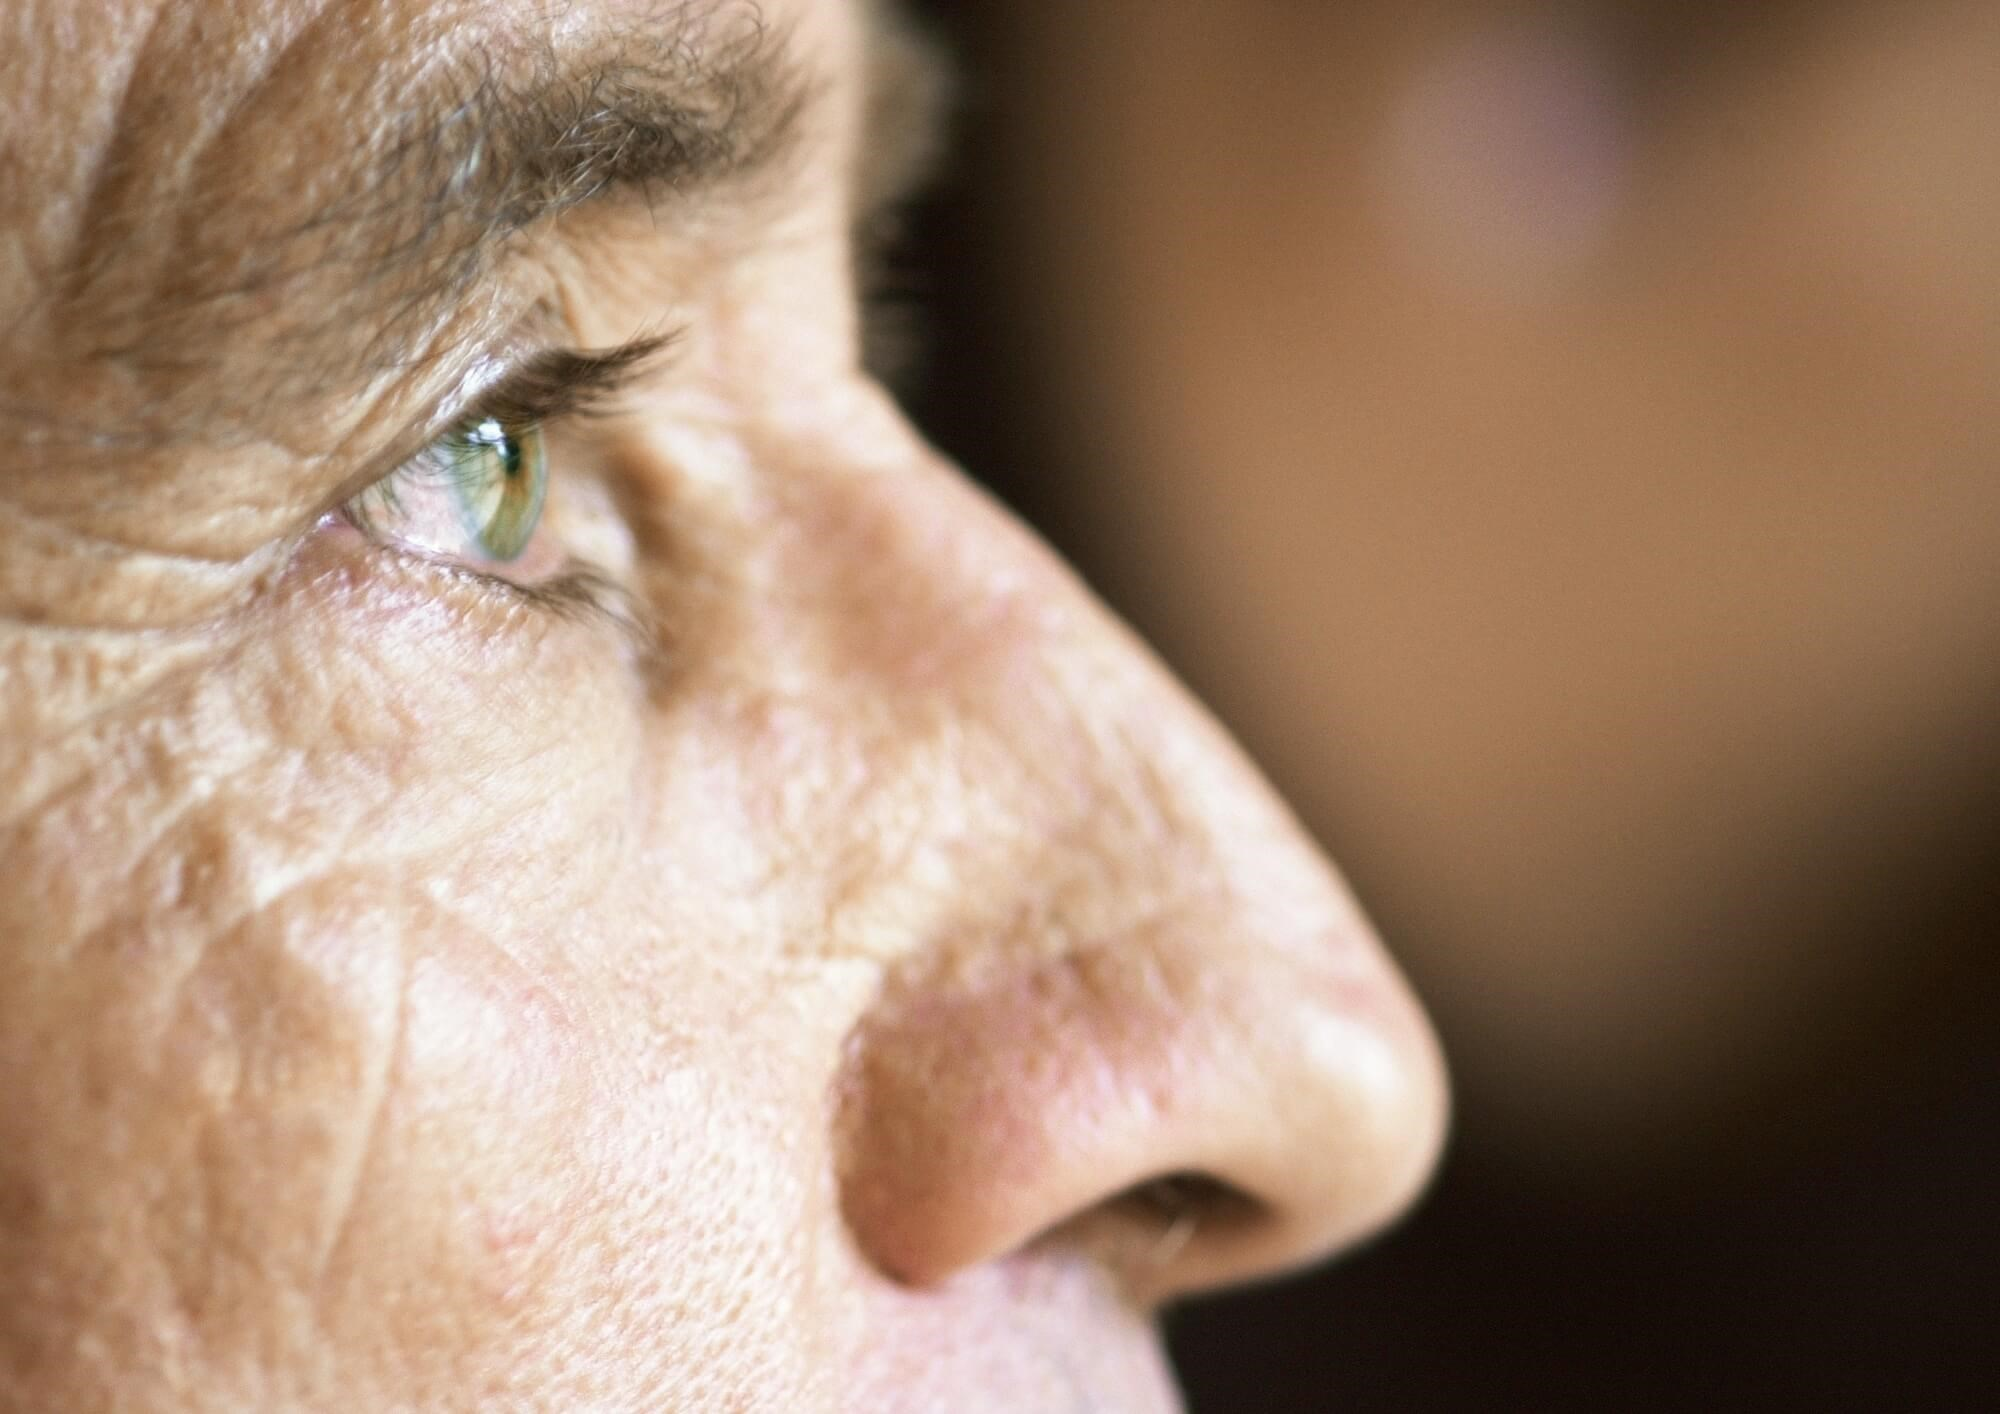 Patients who received combined systemic and intraocular treatment had longer failure-free and relapse-free survival.